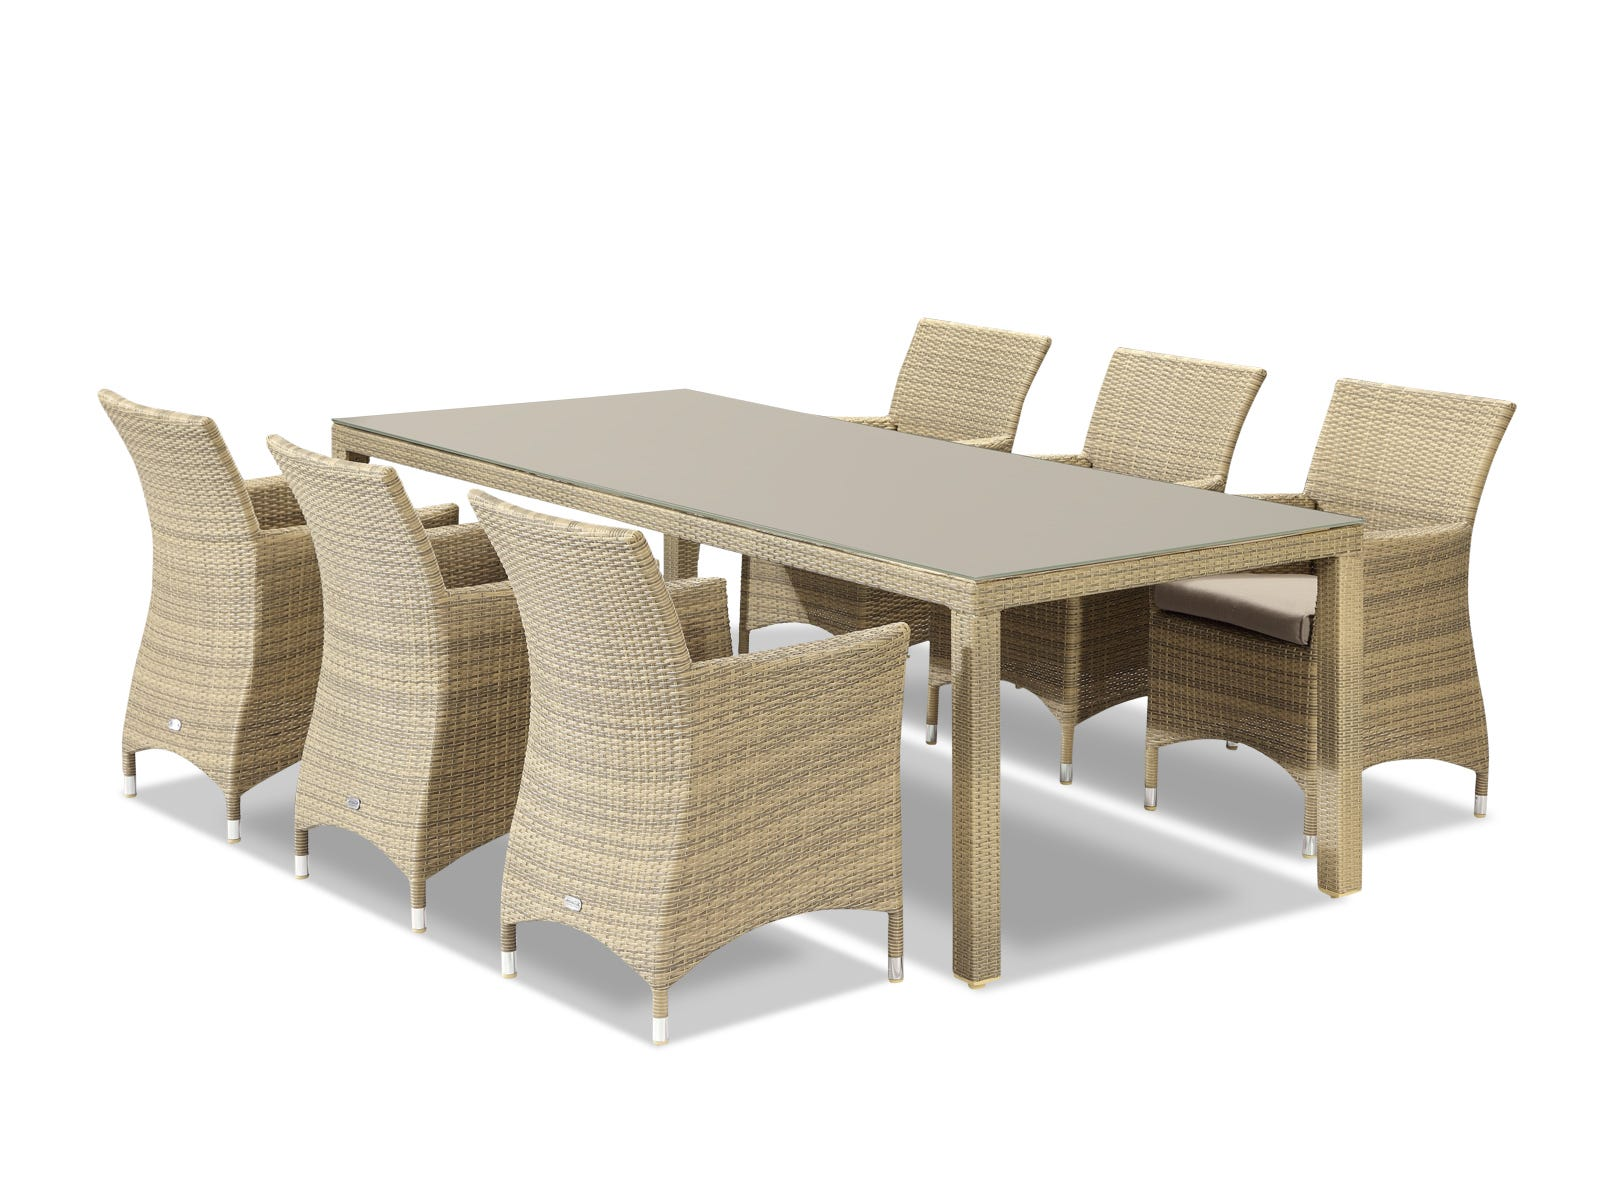 outdoor-furniture-dining-wicker-Mateus-Mateus-7pc-sahara-web